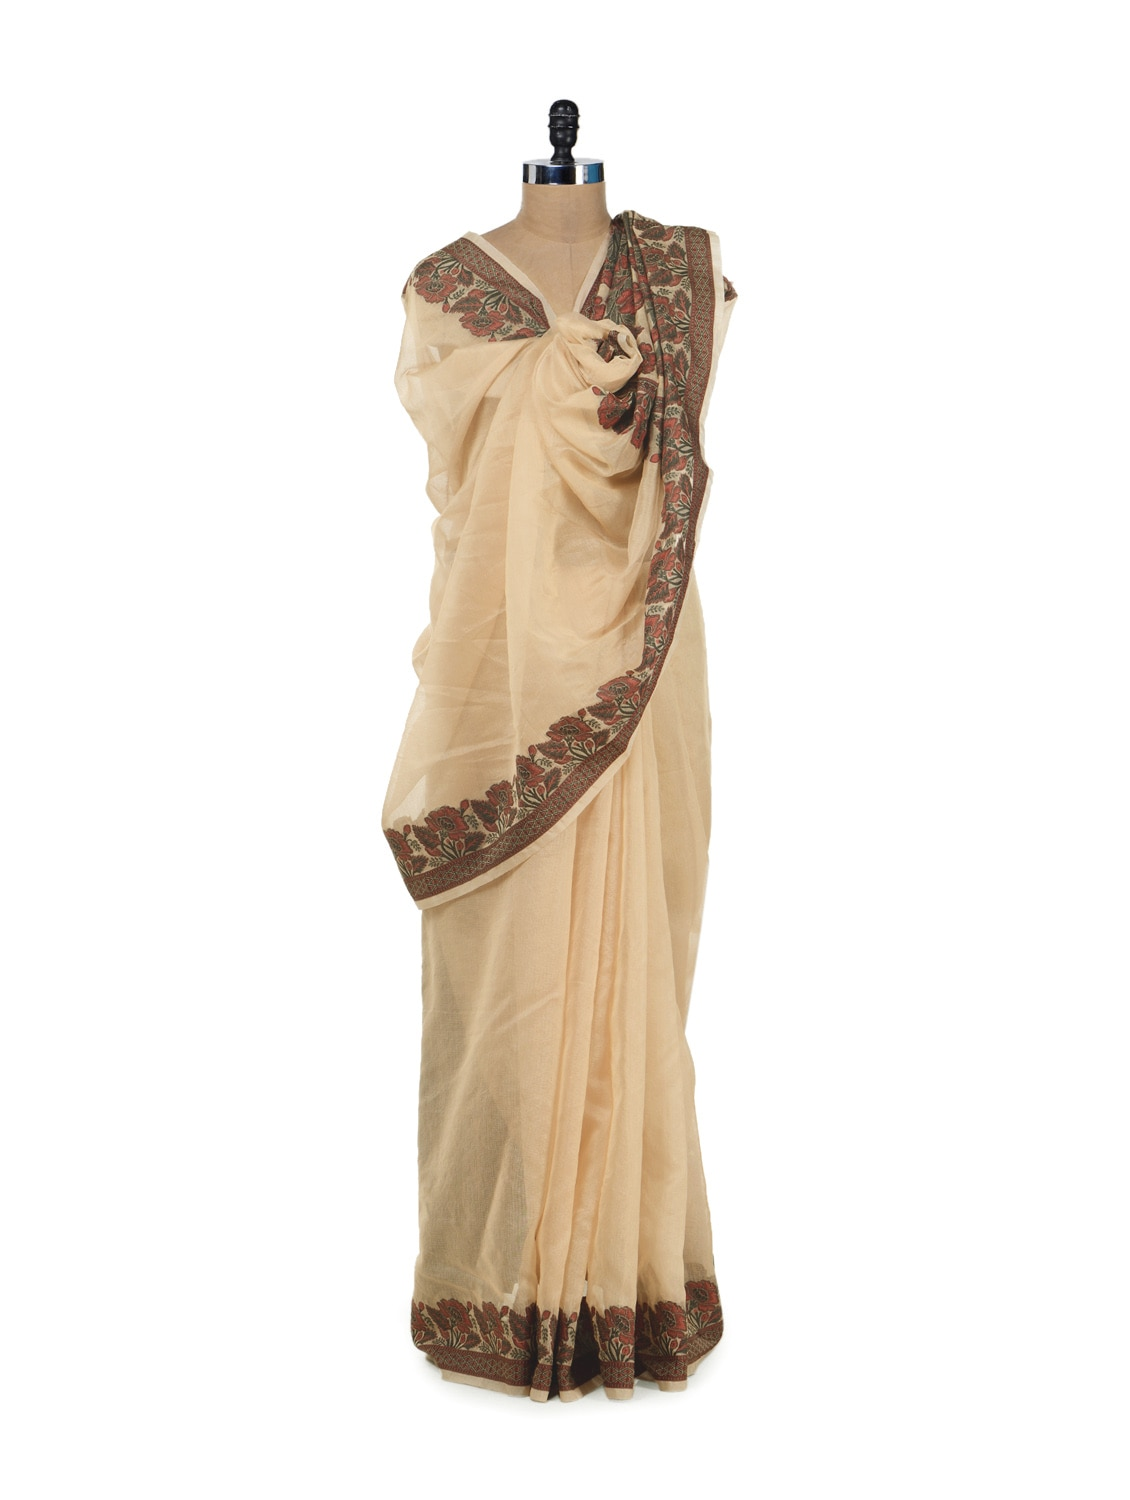 Chic Beige Saree With Floral Cut Work Border And Pallu - Bunkar